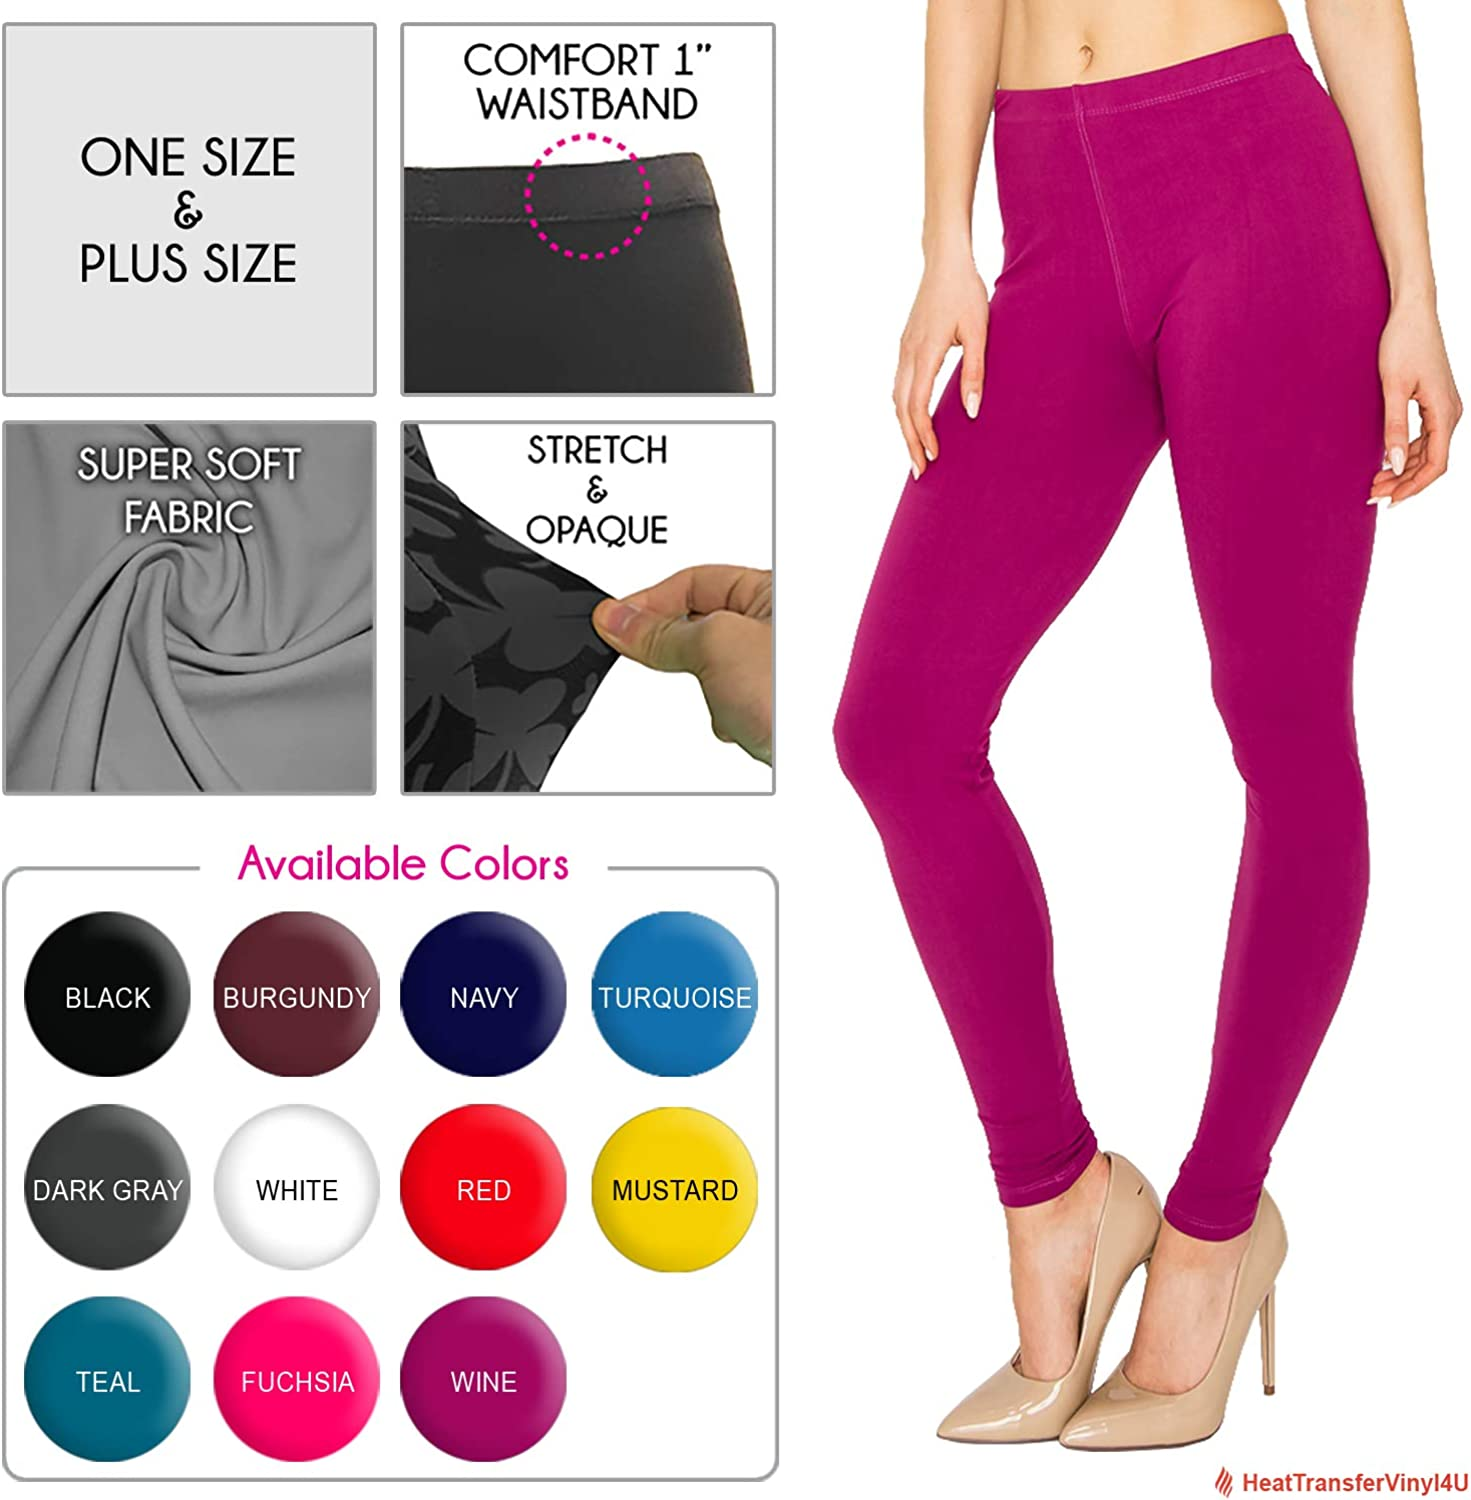 Eevee Womens Solid /& Patterned Leggings One Size-Plus Size